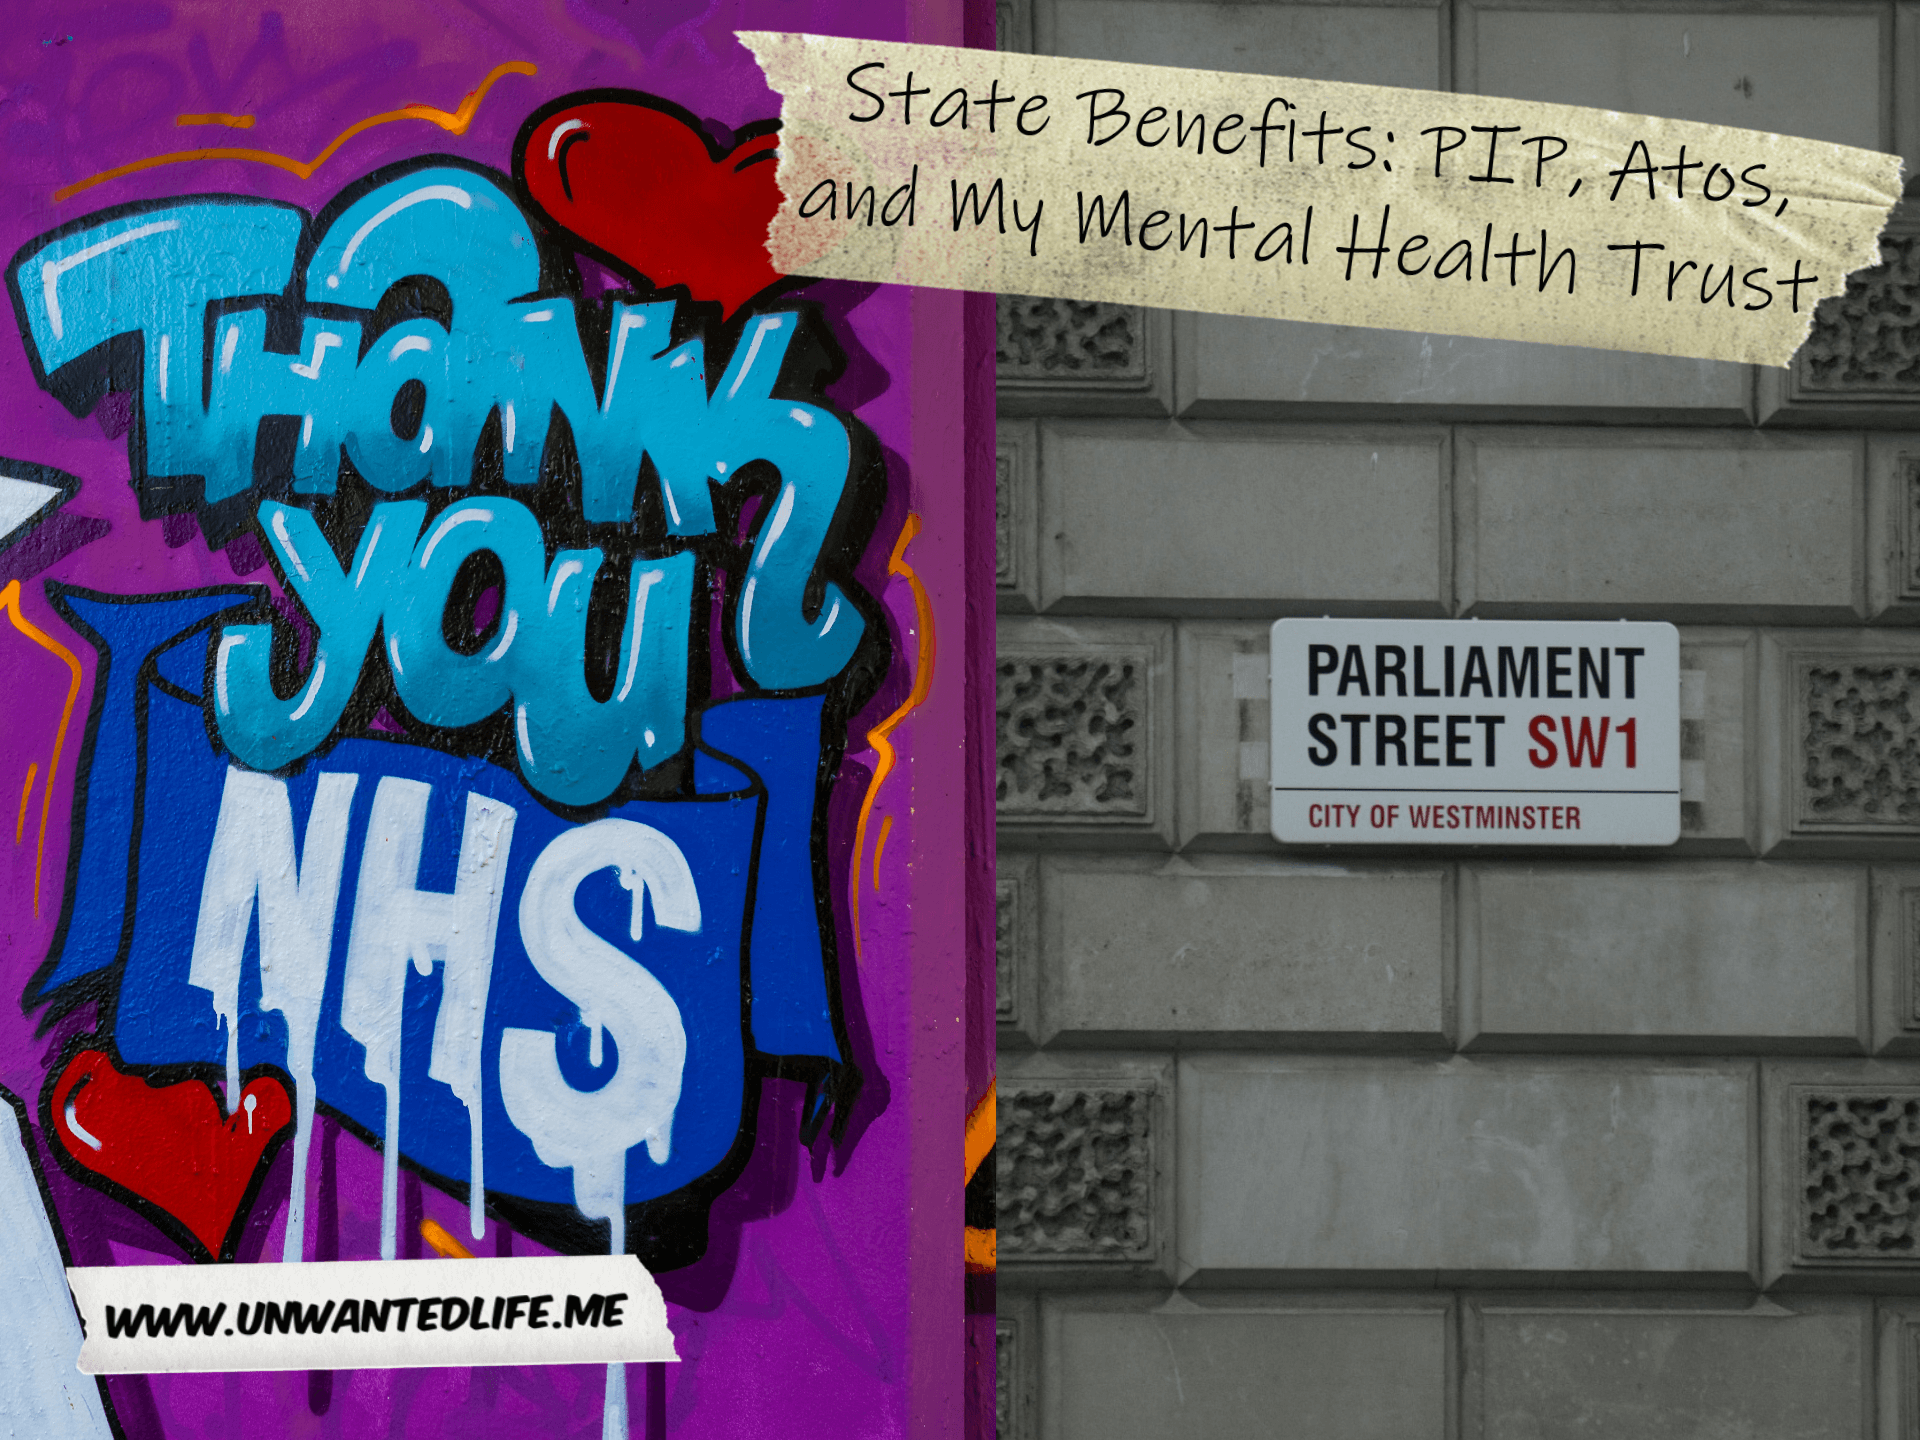 "The image is split in two down the middle with the right image of graffiti saying ""Thank you NHS"" and the right image of the road sign for Parliament Street. The article title - State Benefits: PIP, Atos, and My Mental Health Trust - is in the top right corner"